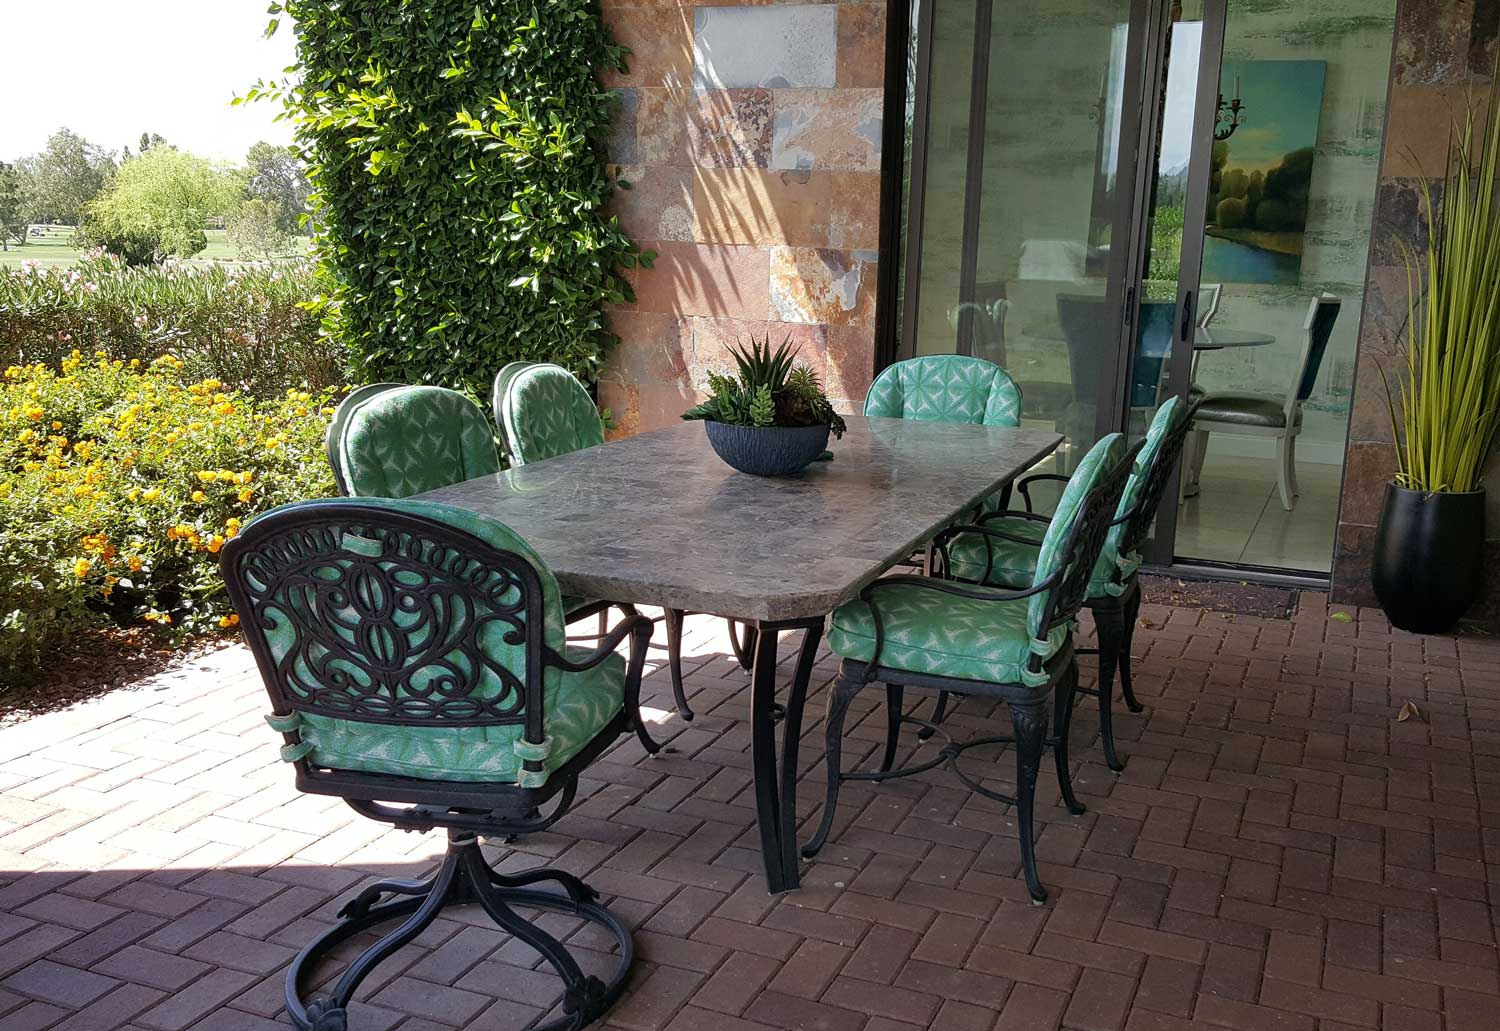 Dining table with six chairs on the patio